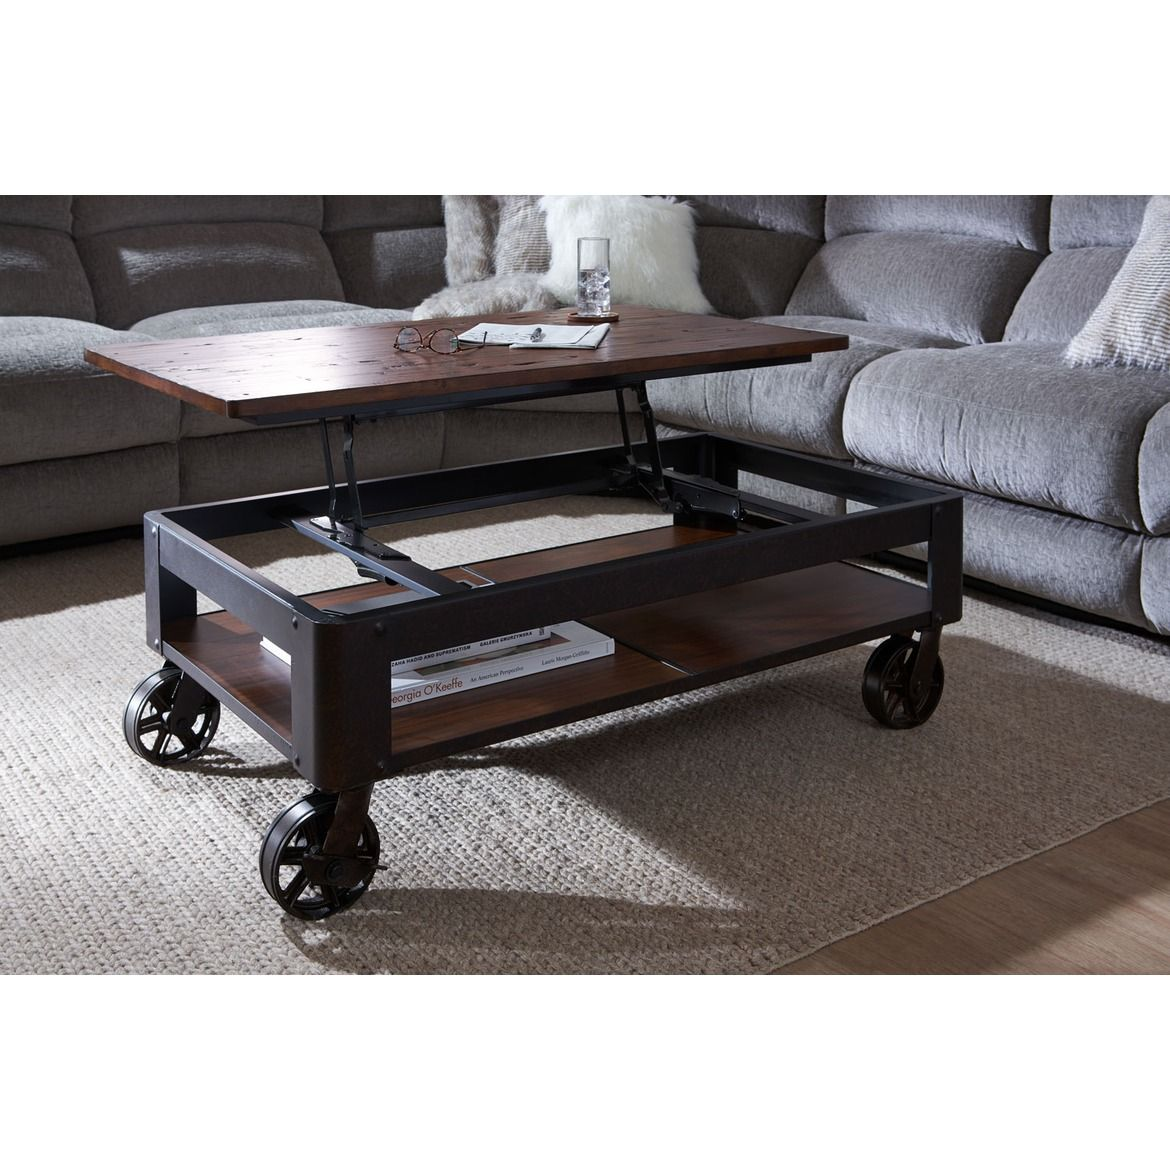 Artemis Marble Coffee Table Value City Furniture And Mattresses Value City Furniture Coffee Table City Furniture [ 1170 x 1170 Pixel ]